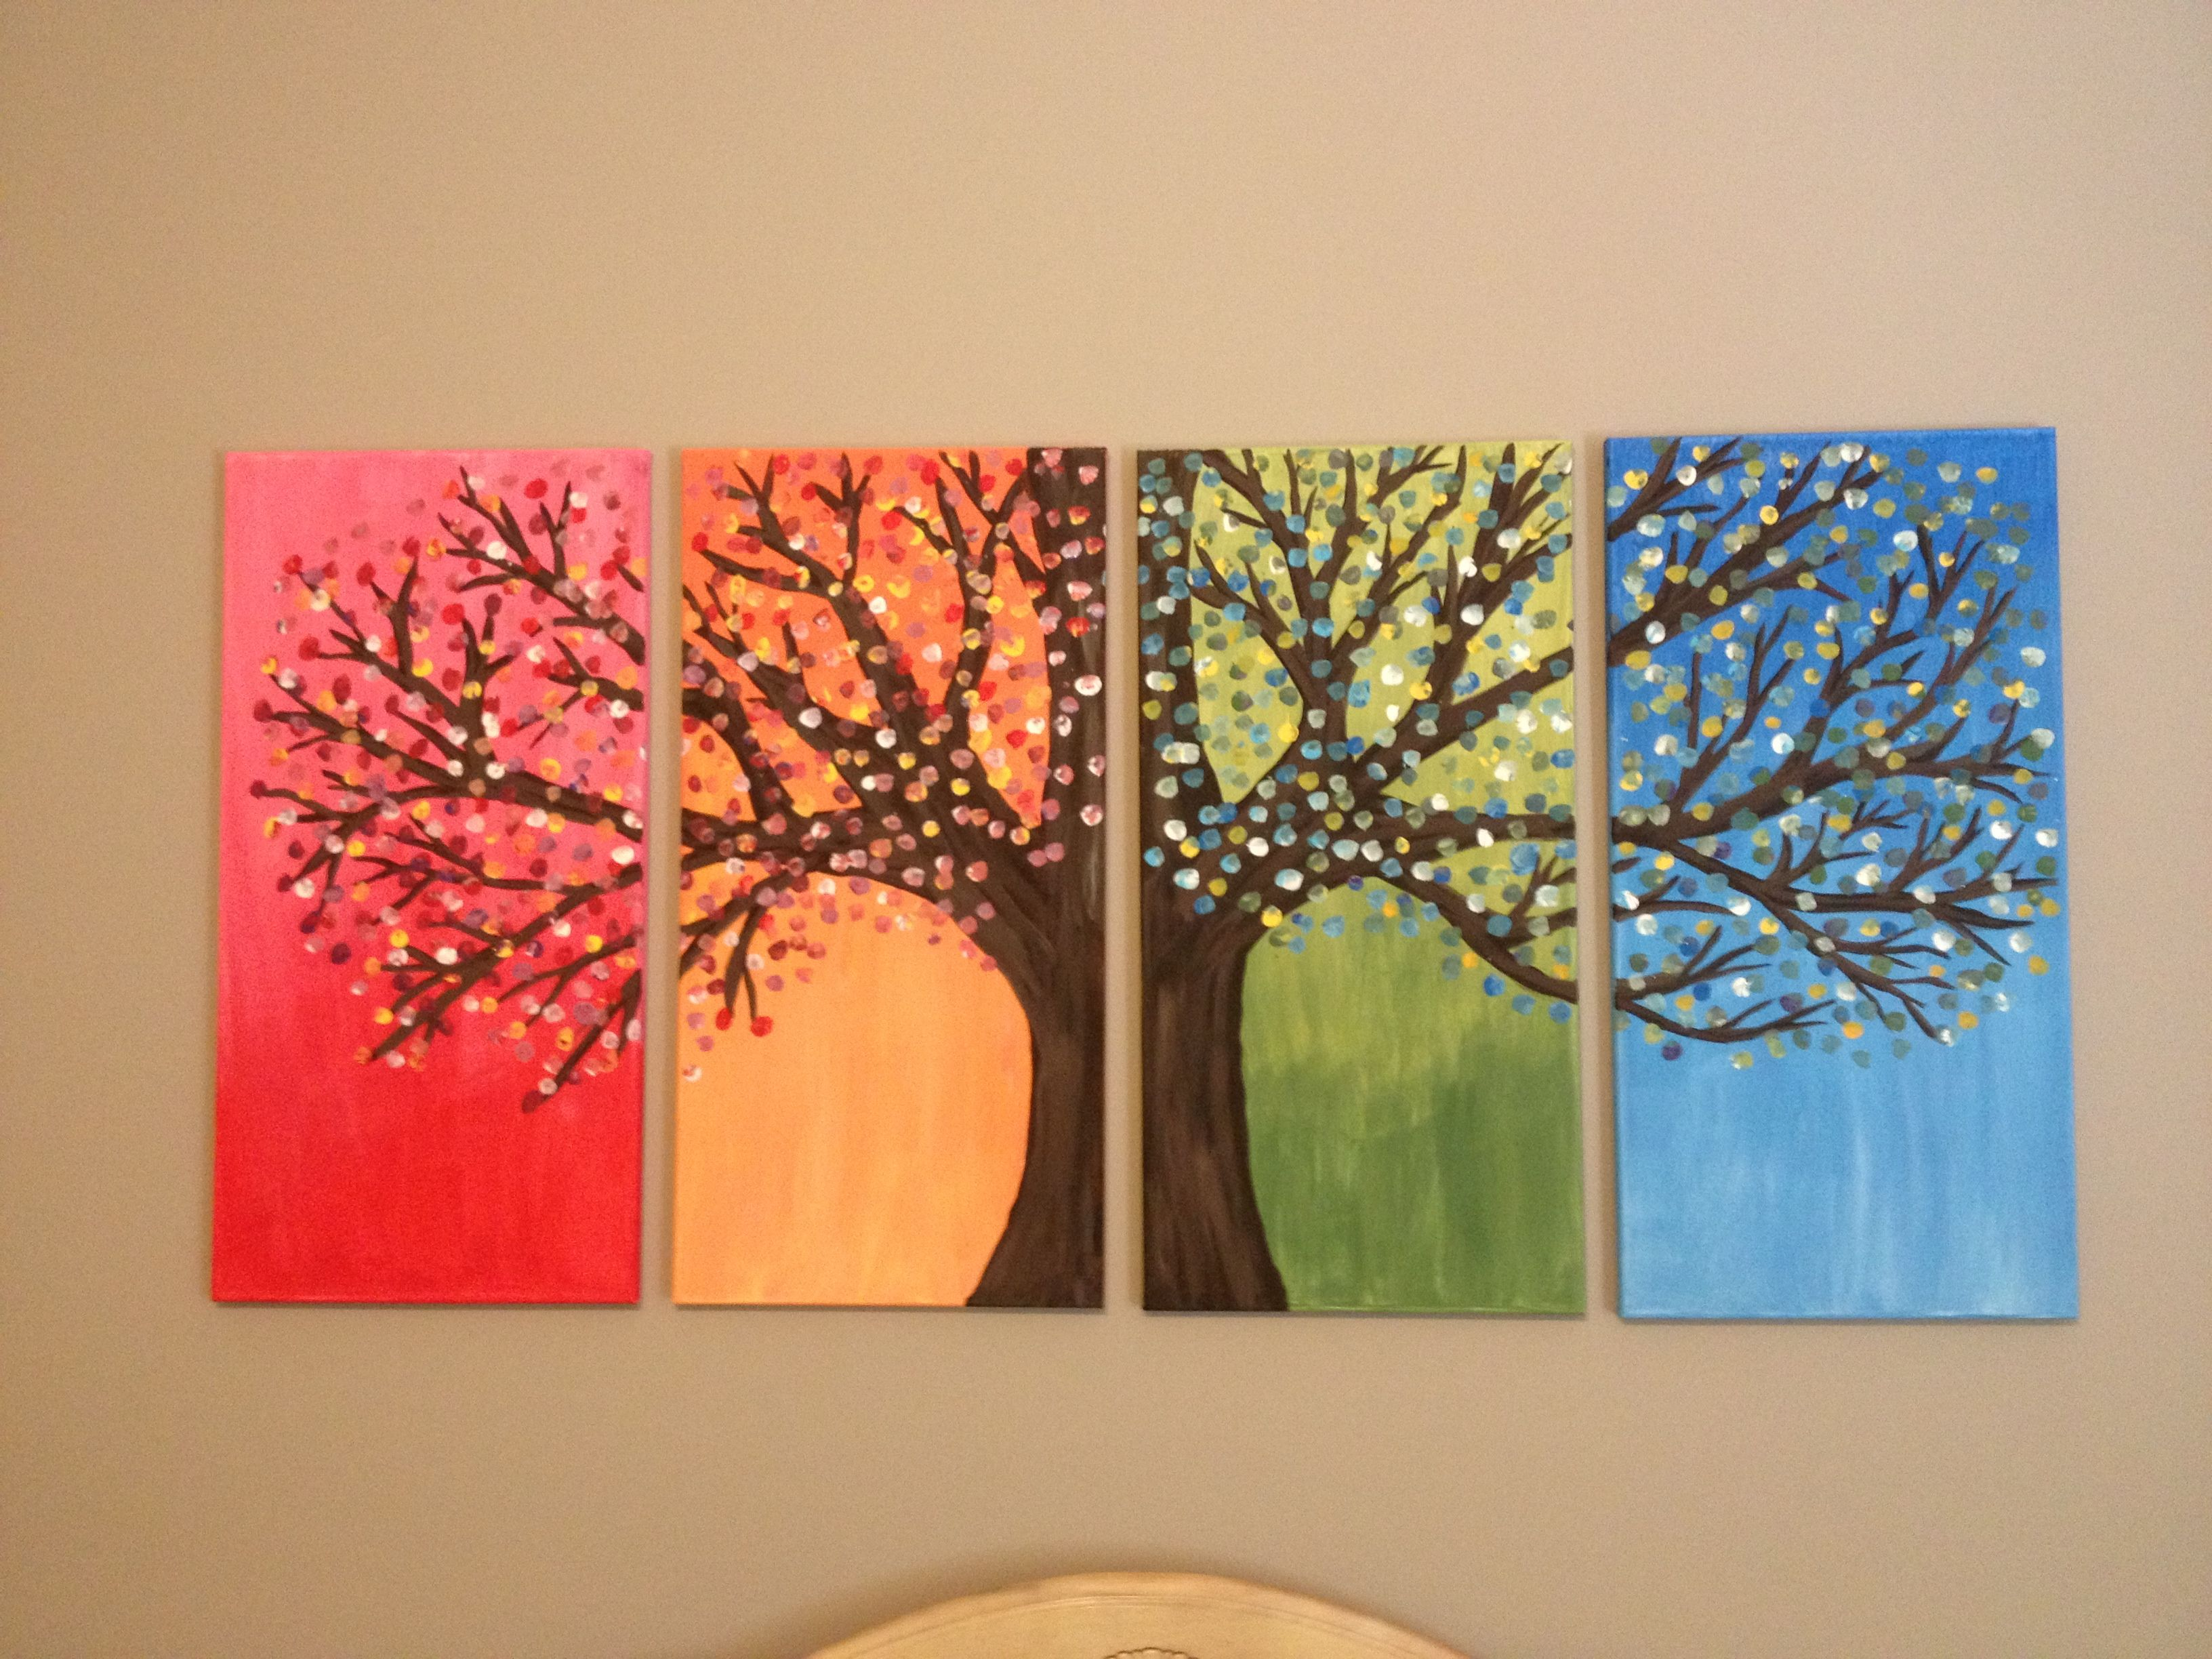 4 seasons so paint each portion of the tree to mirror the season